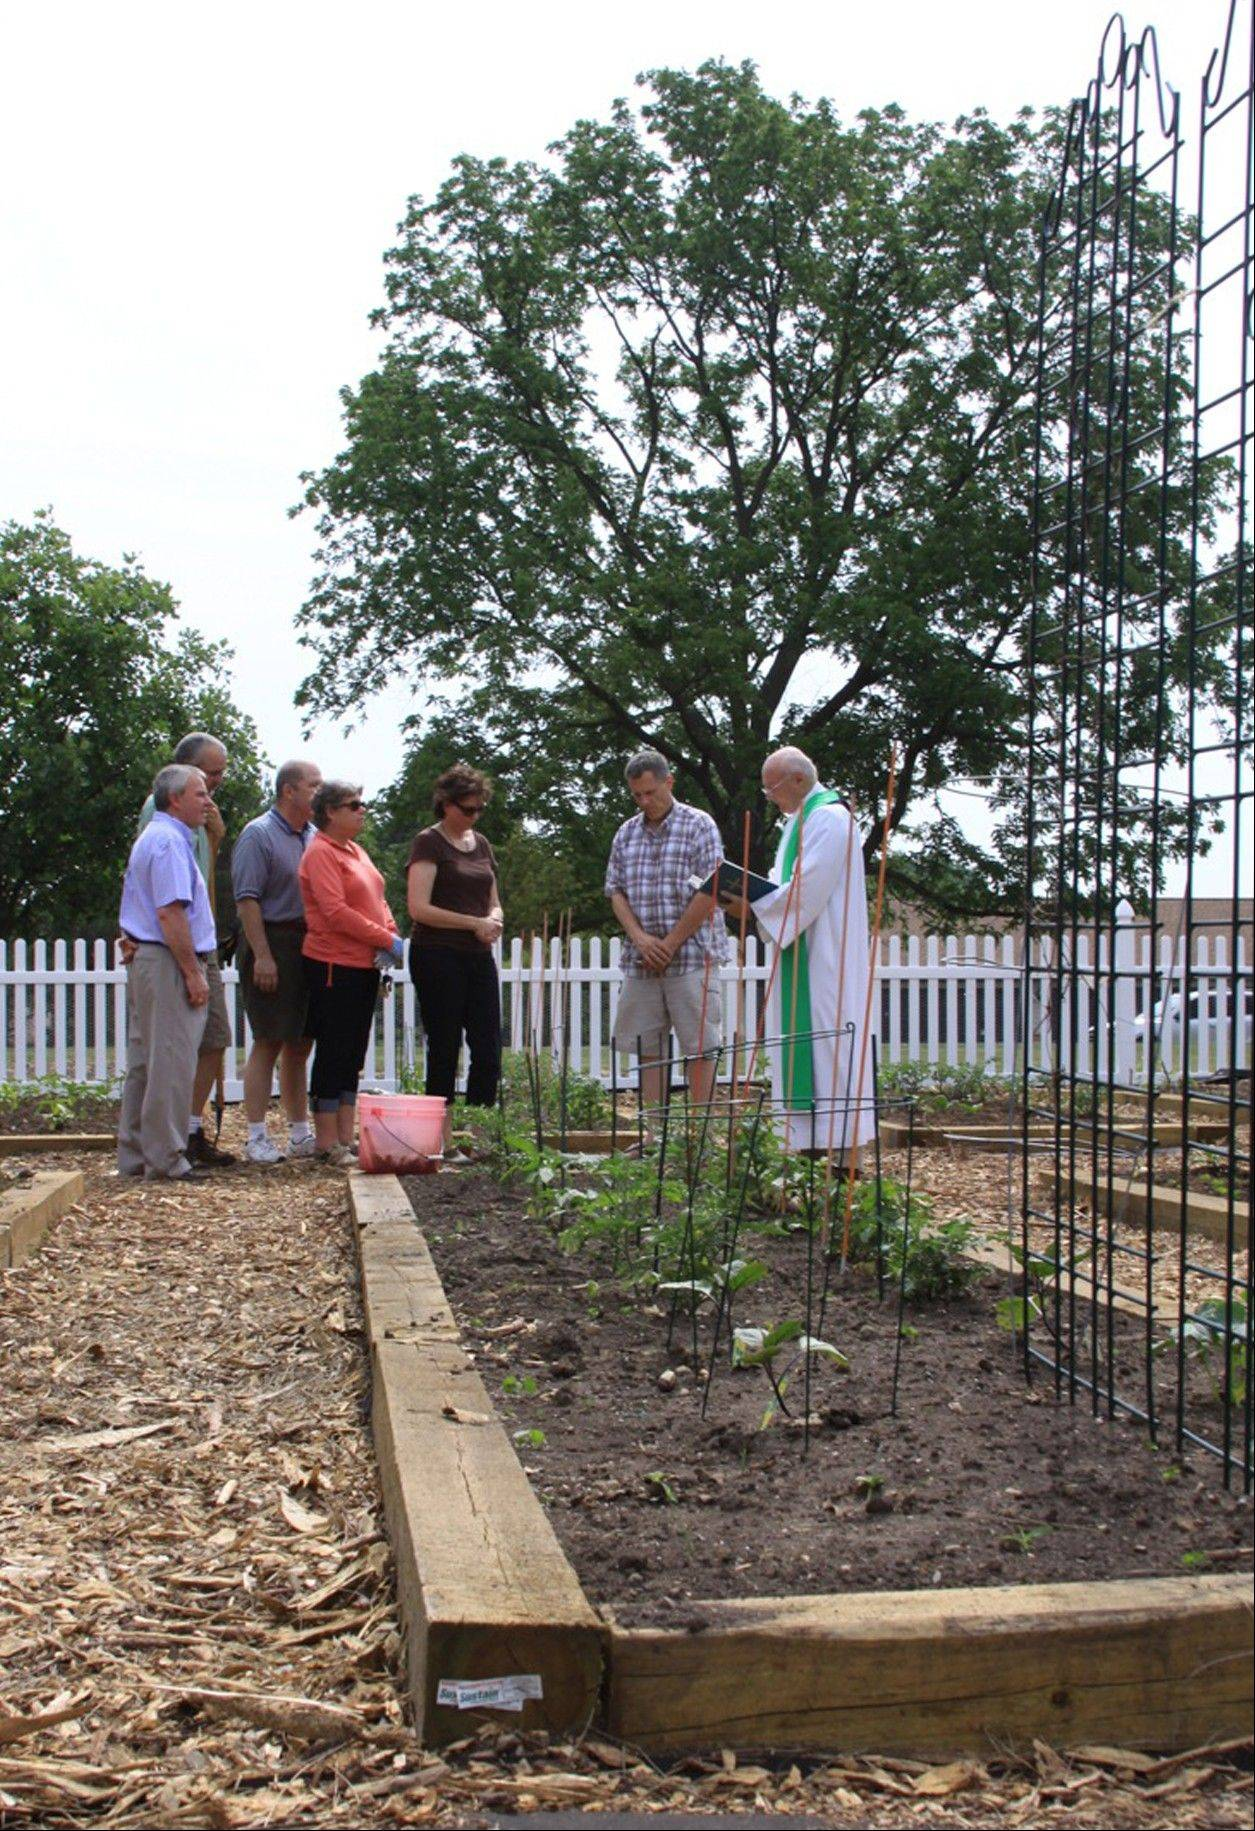 Clerics of St. Viator sow a Giving Garden